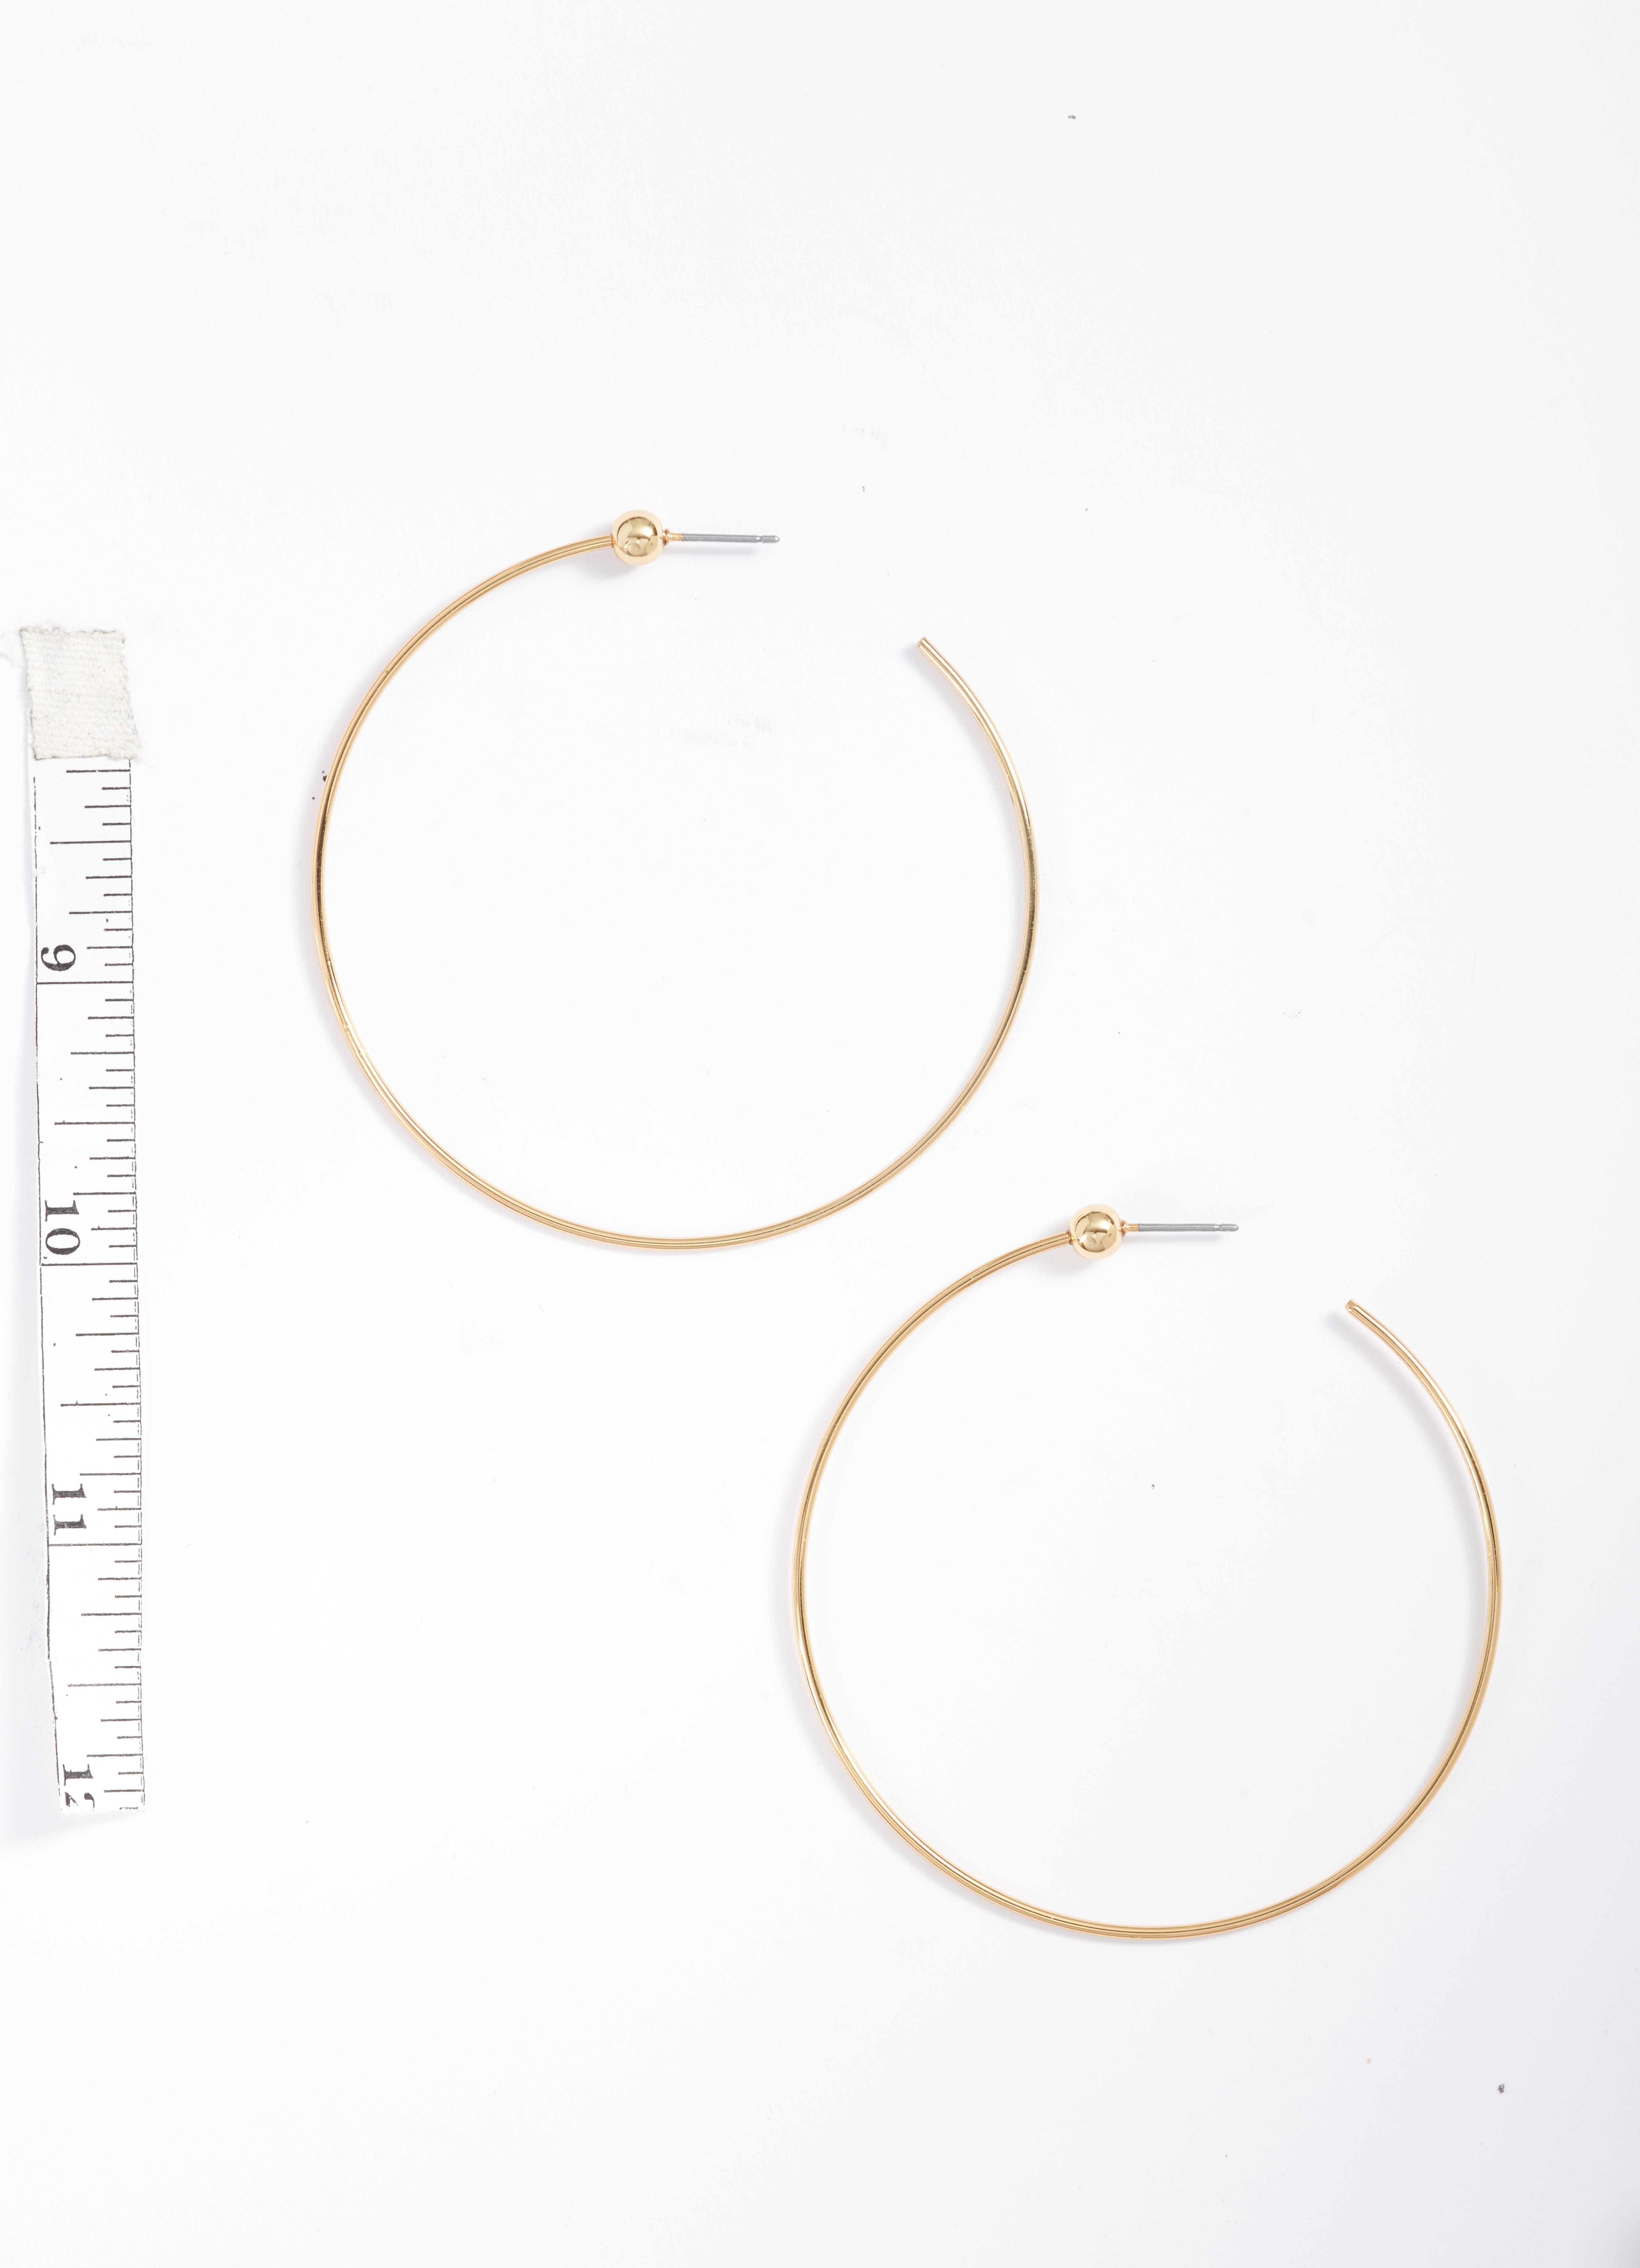 Medium Hoop Earrings,                             Alternate thumbnail 2, color,                             Gold